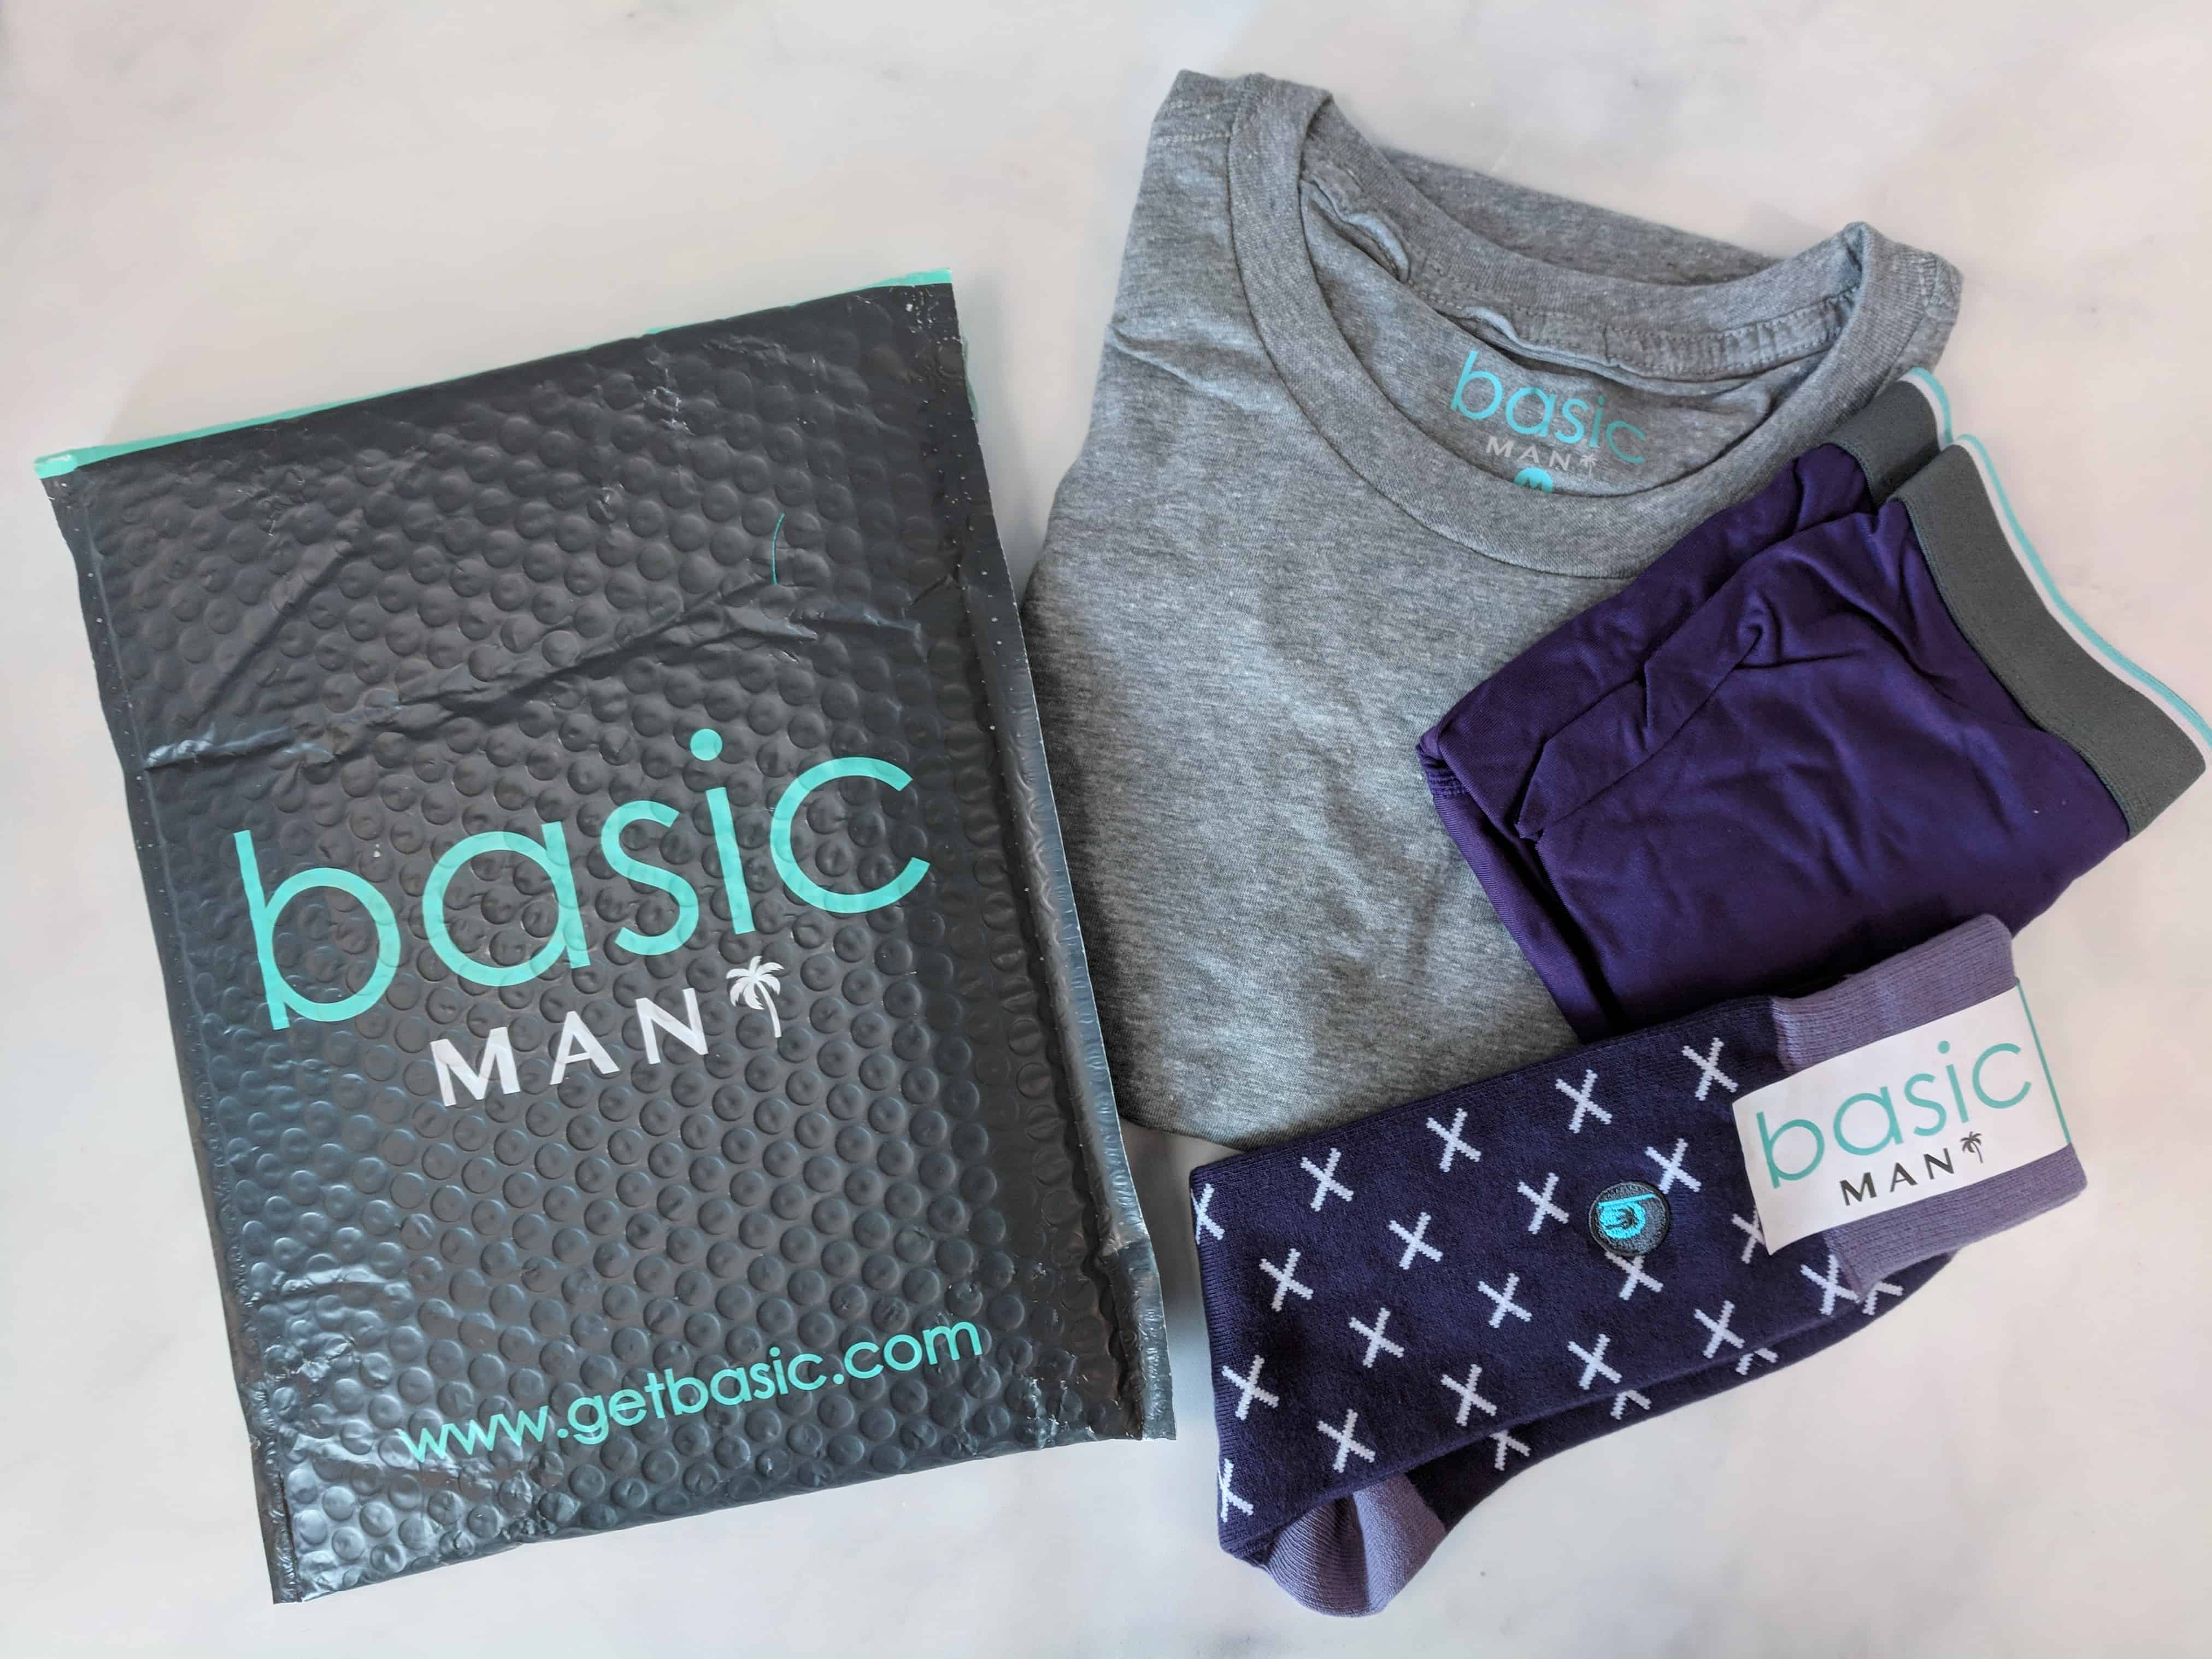 Basic MAN Subscription Box Review + Buy One Get One FREE Coupon – September 2018